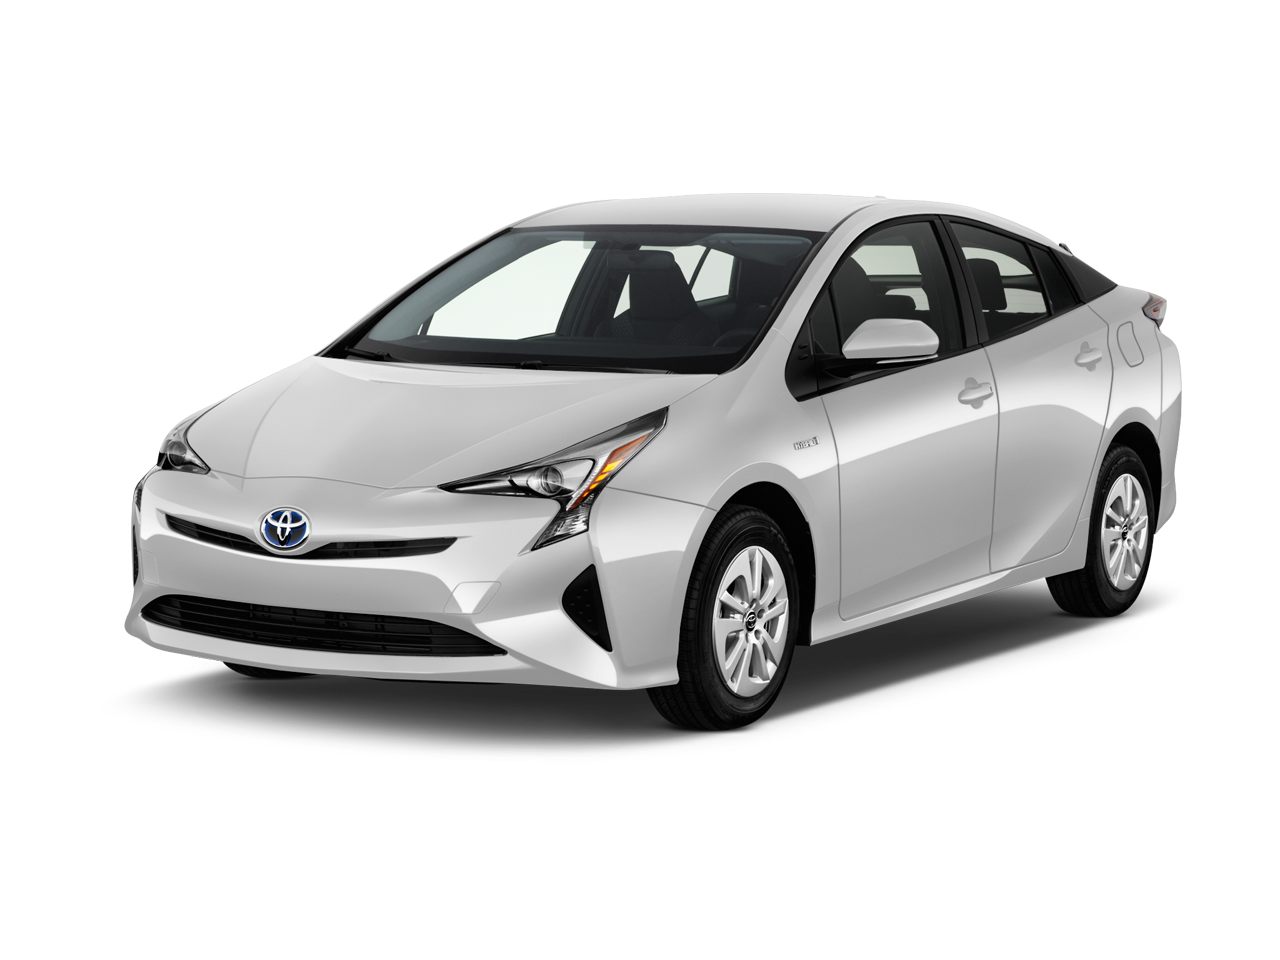 new 2017 toyota prius two 5d hatchback near kennewick wa. Black Bedroom Furniture Sets. Home Design Ideas